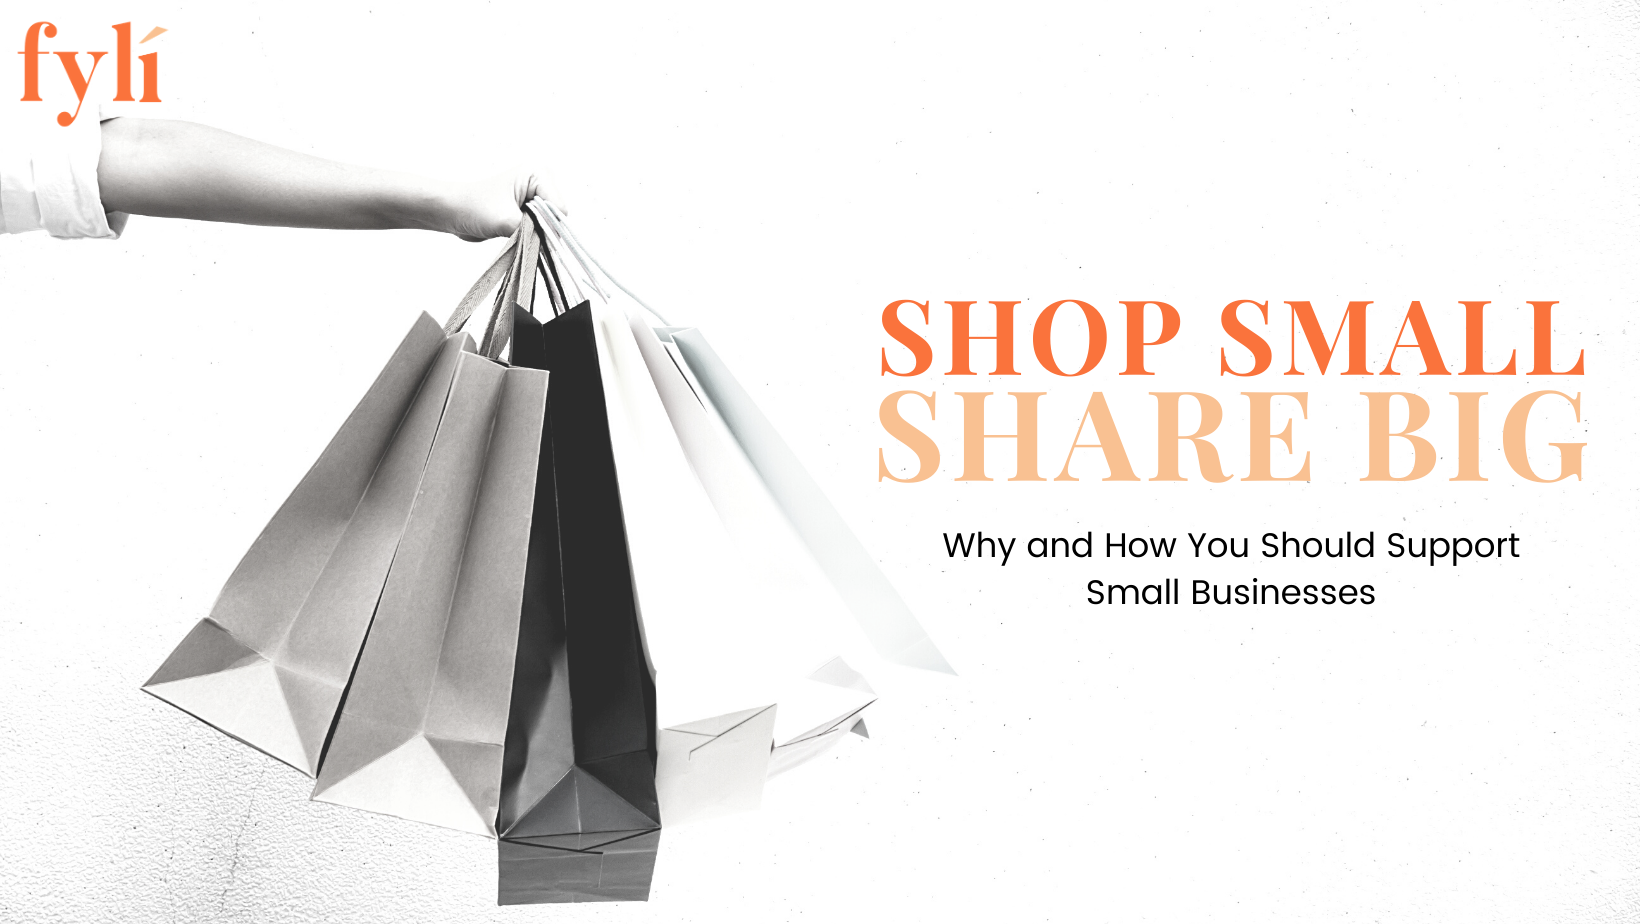 Shop Small Share Big